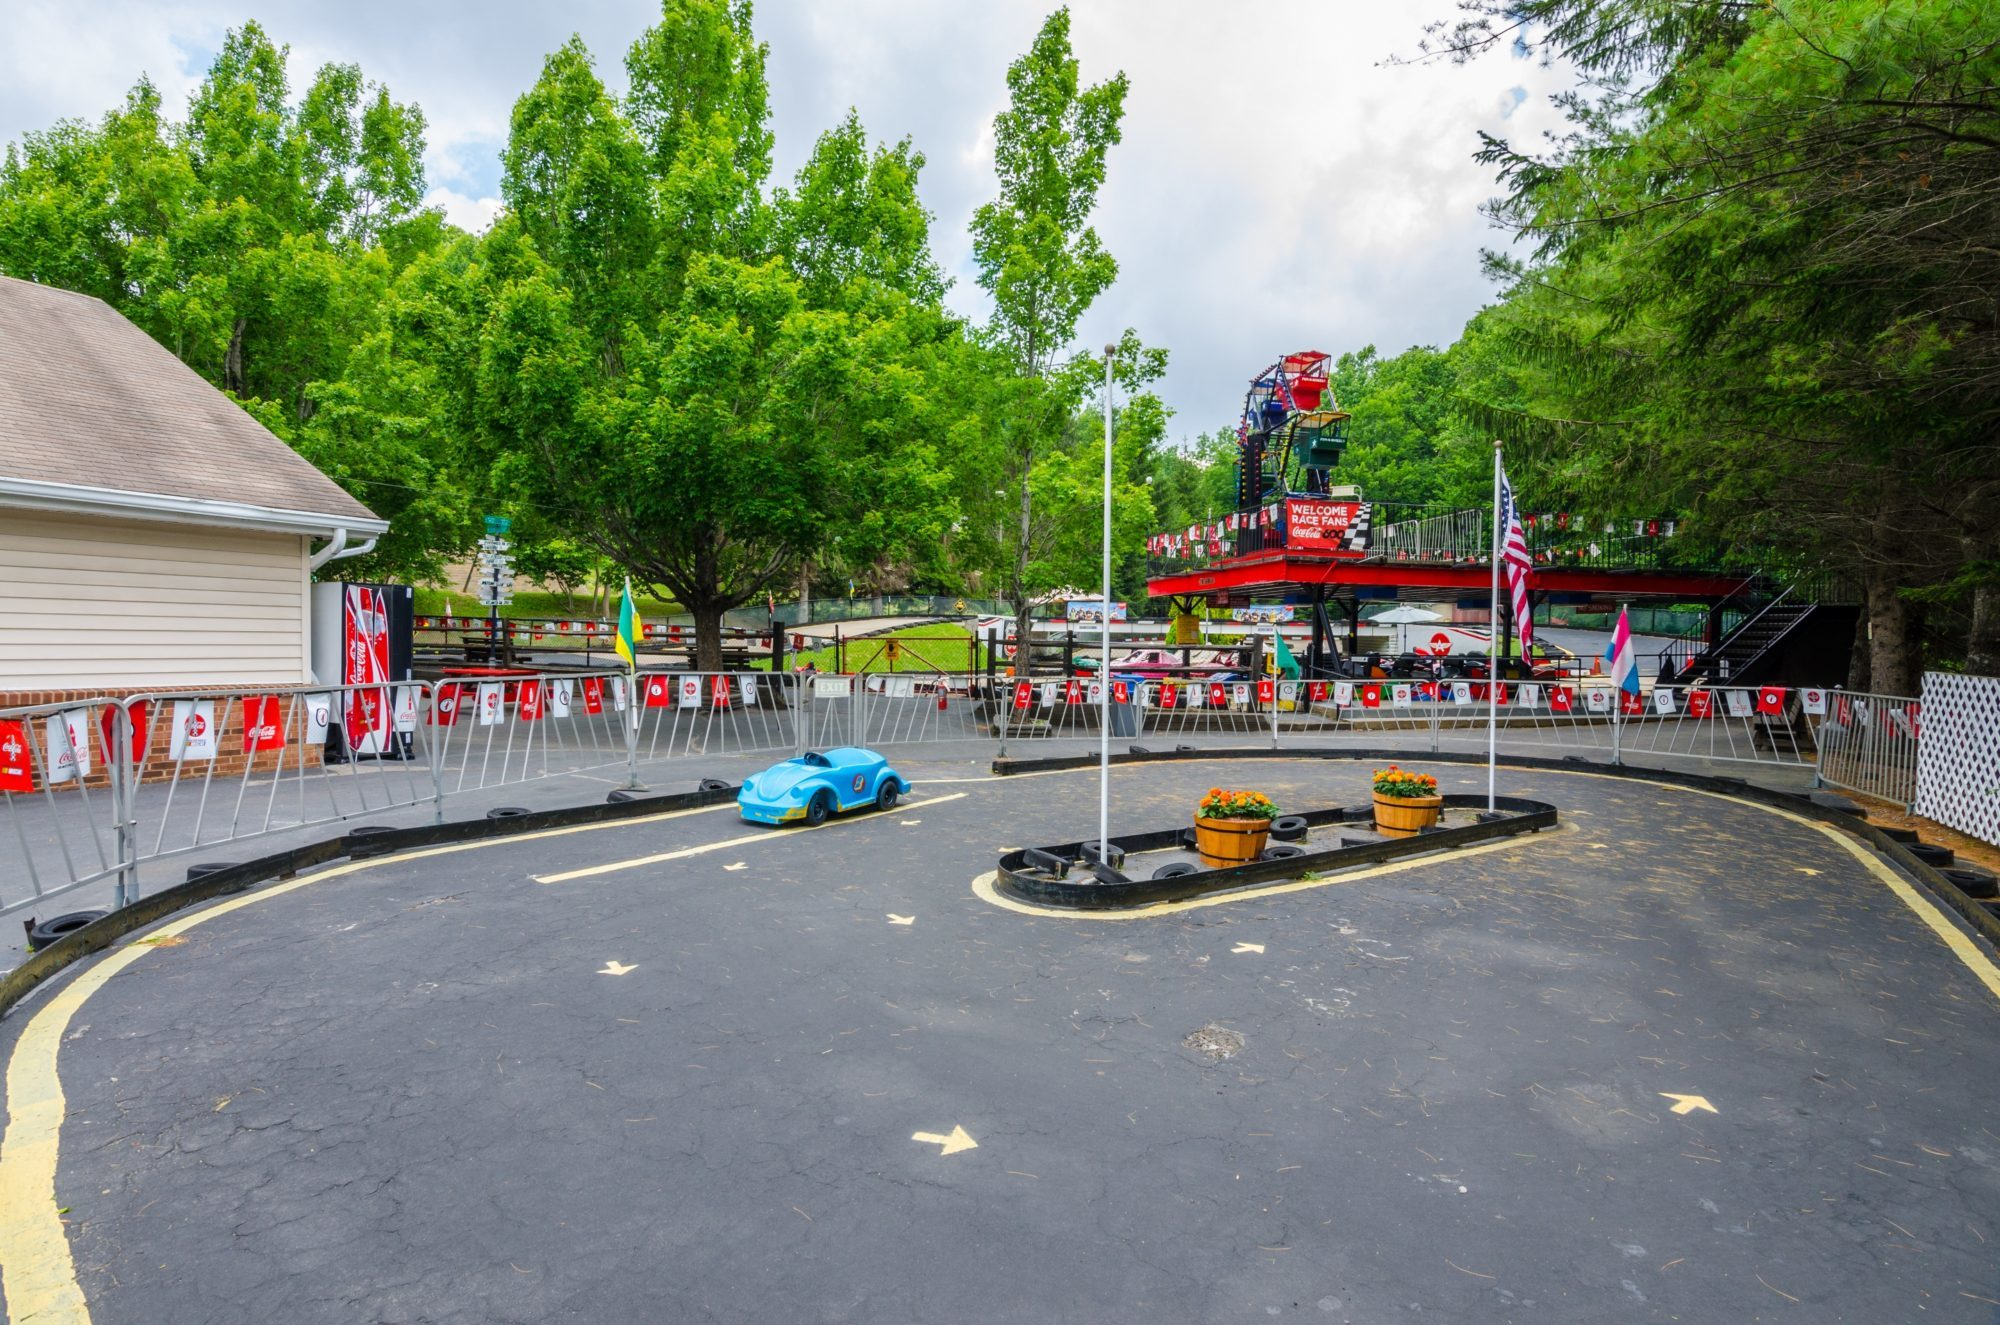 Car track with small pedal cars next to go kart track and wooden building with vending machine